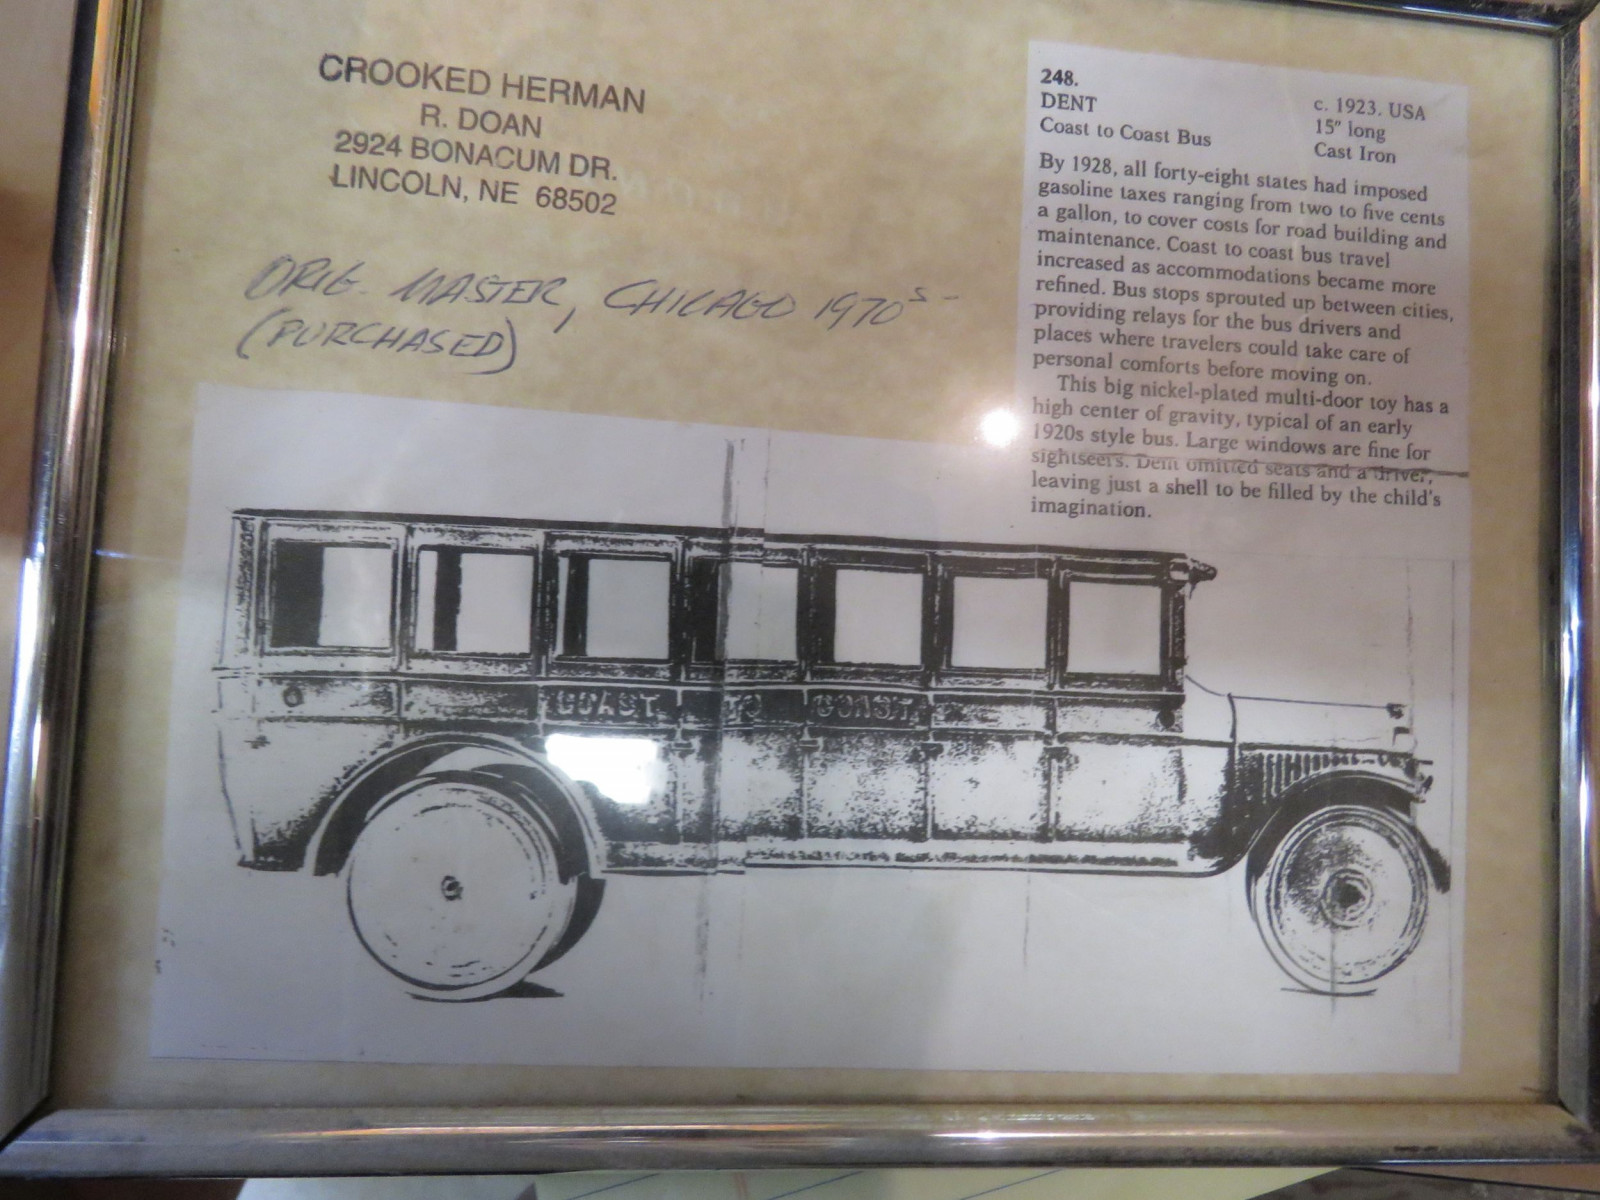 Original Master Denton Cast Iron Bus for Toy - Image 2